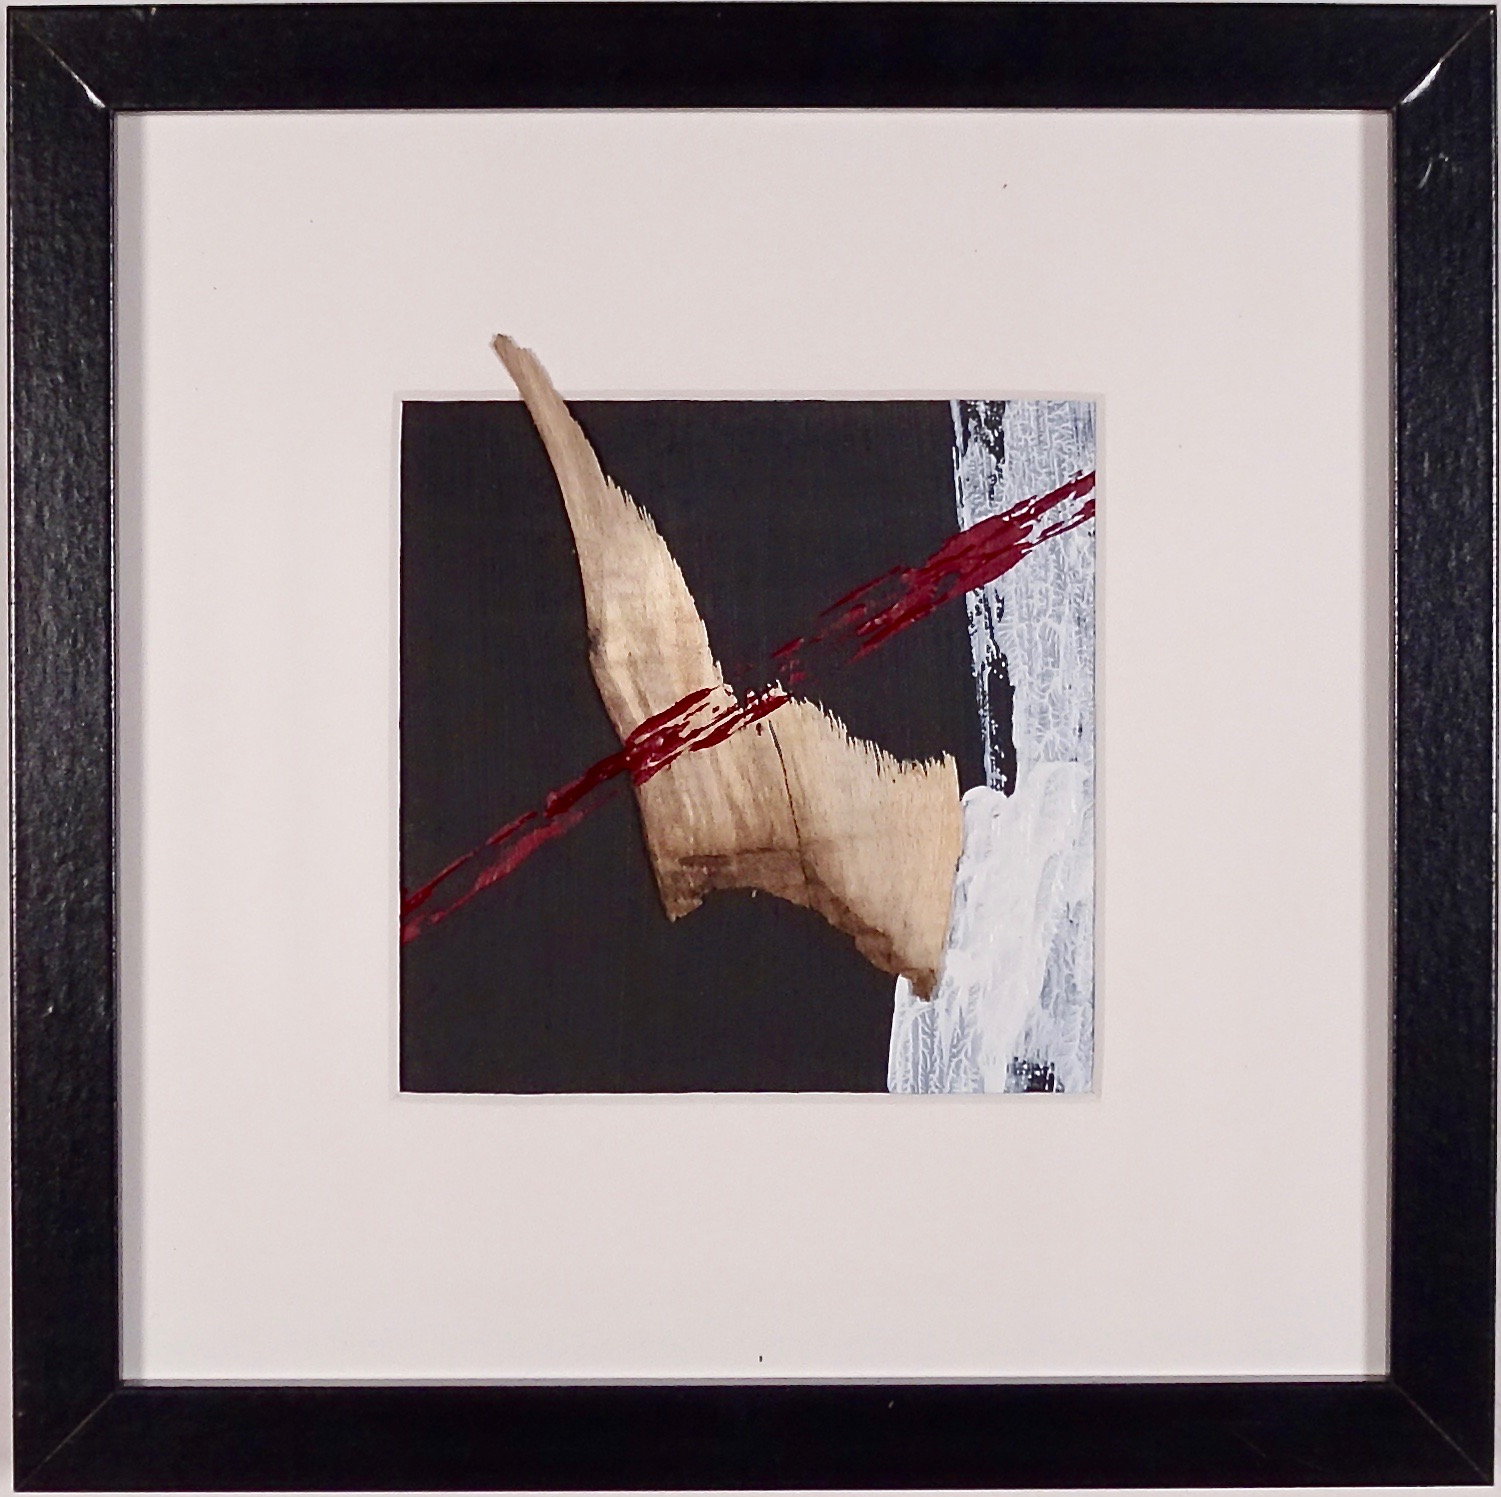 NAUFRAGIO #12 - Beached wood, acrylic, sea water on cardboard, 25x25cmm with passe-partout frame - AVAILABLE